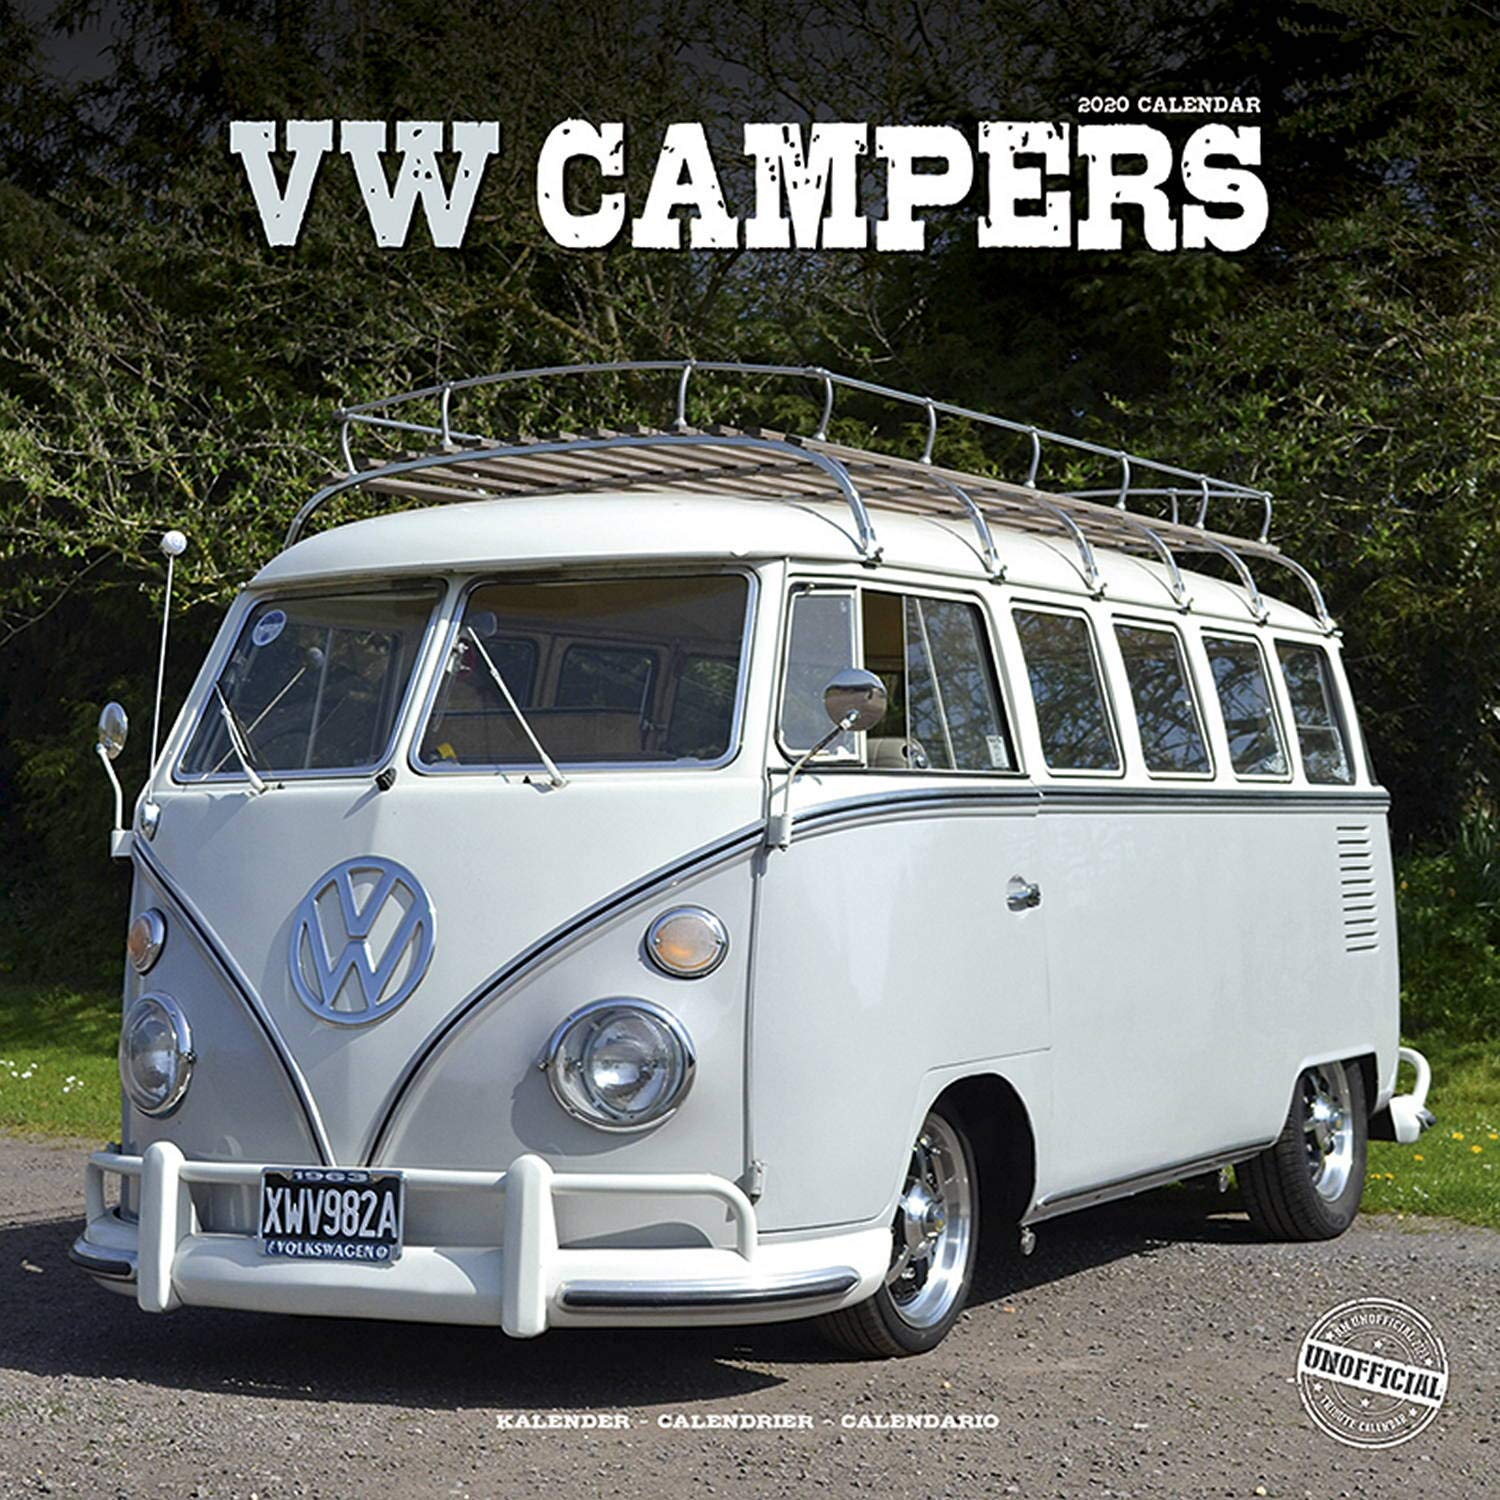 Calendrier Fun Car 2020.Vw Camper Calendar Calendars 2019 2020 Wall Calendars